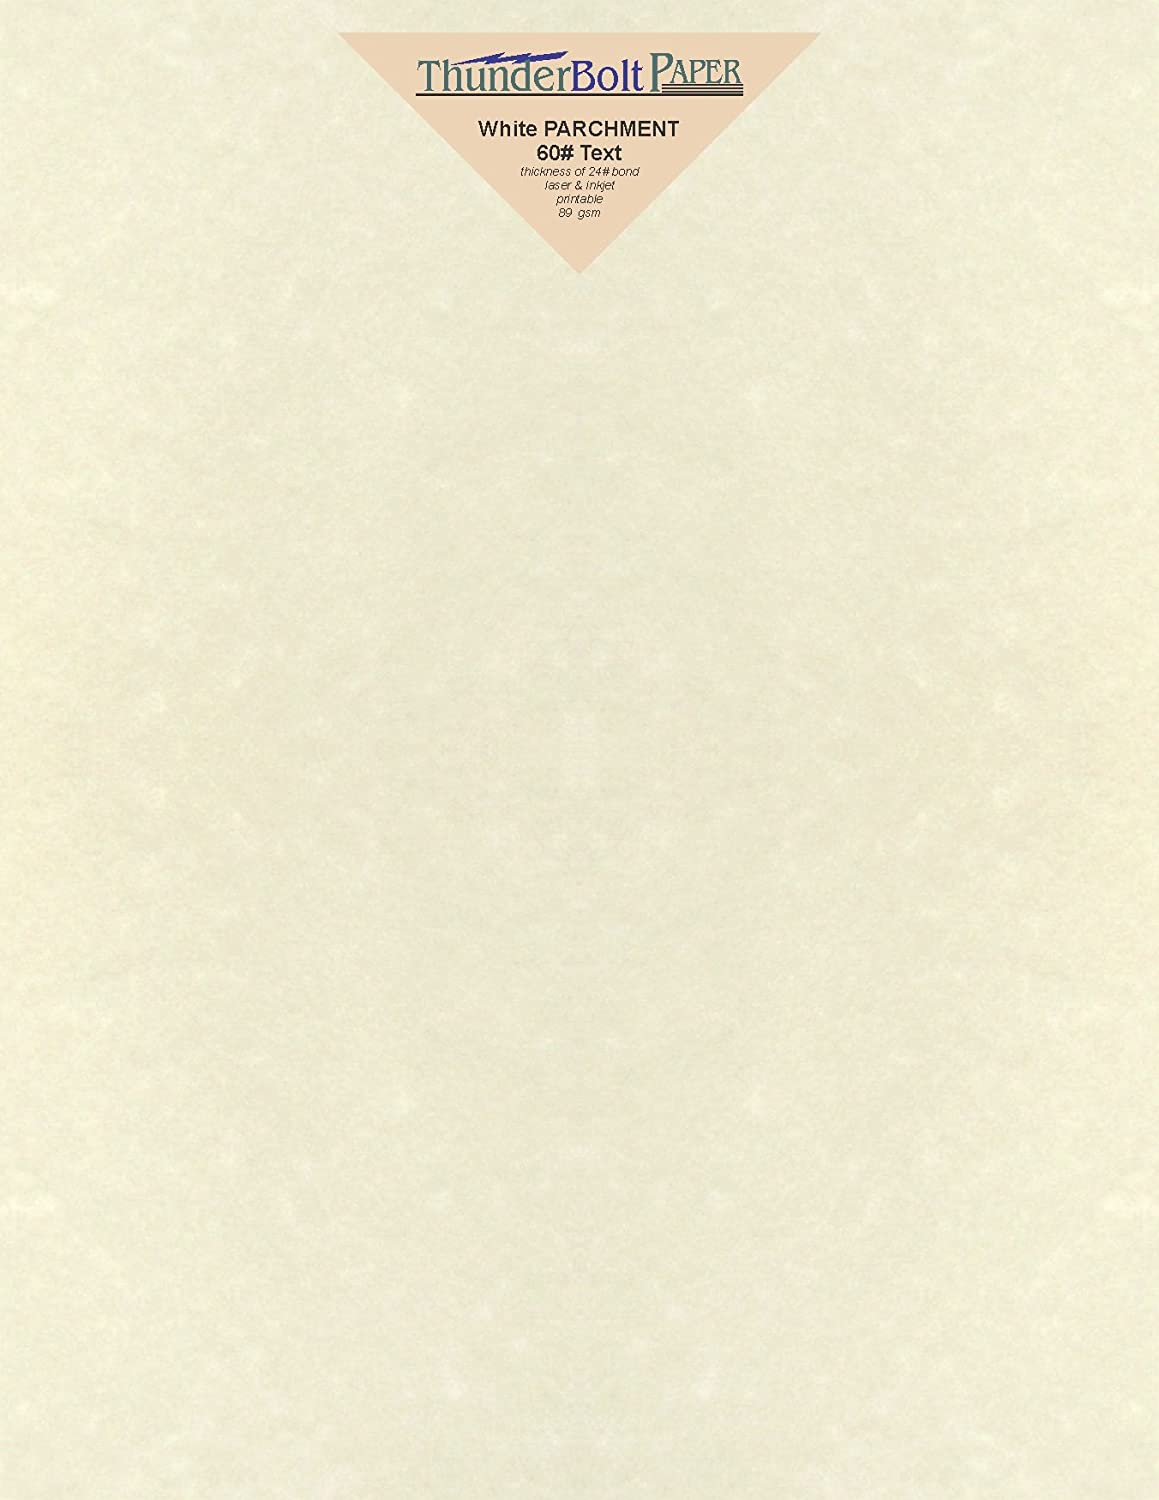 100 Soft White Parchment 60# Text (=24# Bond) Paper Sheets - 8 X 10 Inches Frame and Photo Size Size - 60 Pound is Not Card Weight - Vintage Colored Old Parchment Semblance TBP 4336882401